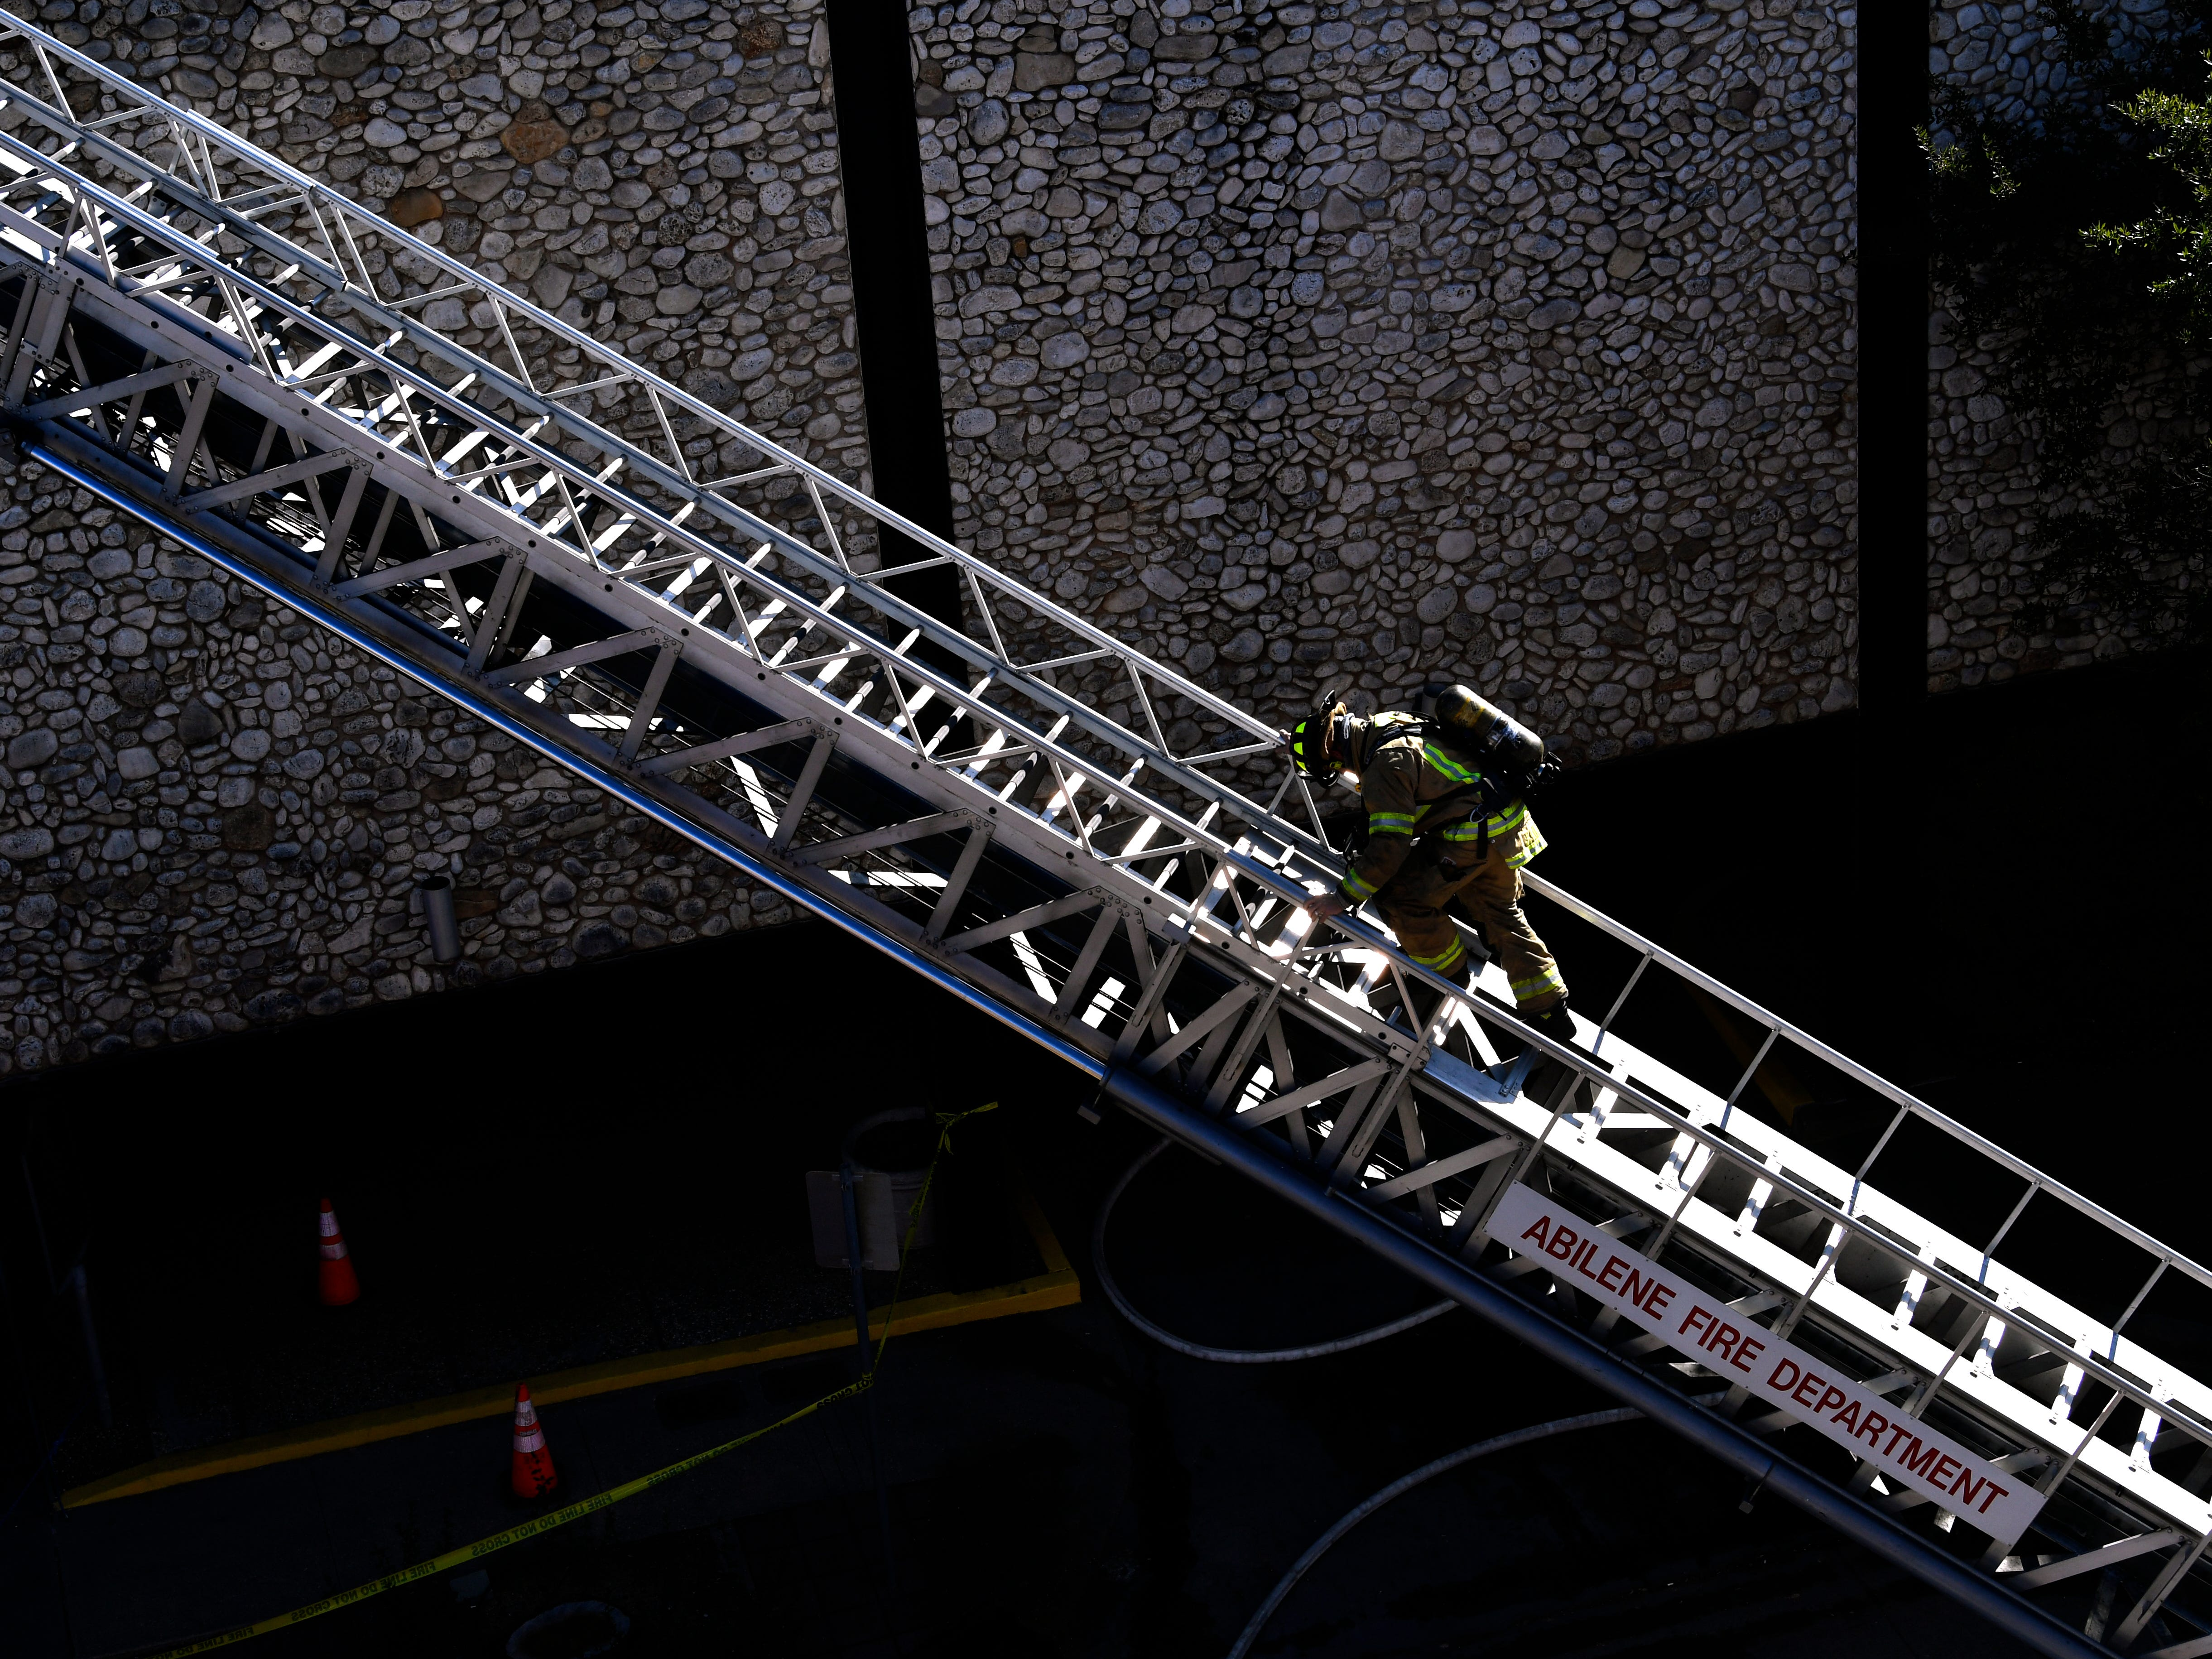 An Abilene firefighter climbs down a ladder while responding to a two-alarm blaze at the Abilene Reporter-News Thursday Nov. 15, 2018. The fire was called in at 9:20 a.m., at one time all three of the city's ladder trucks were employed during the fight.